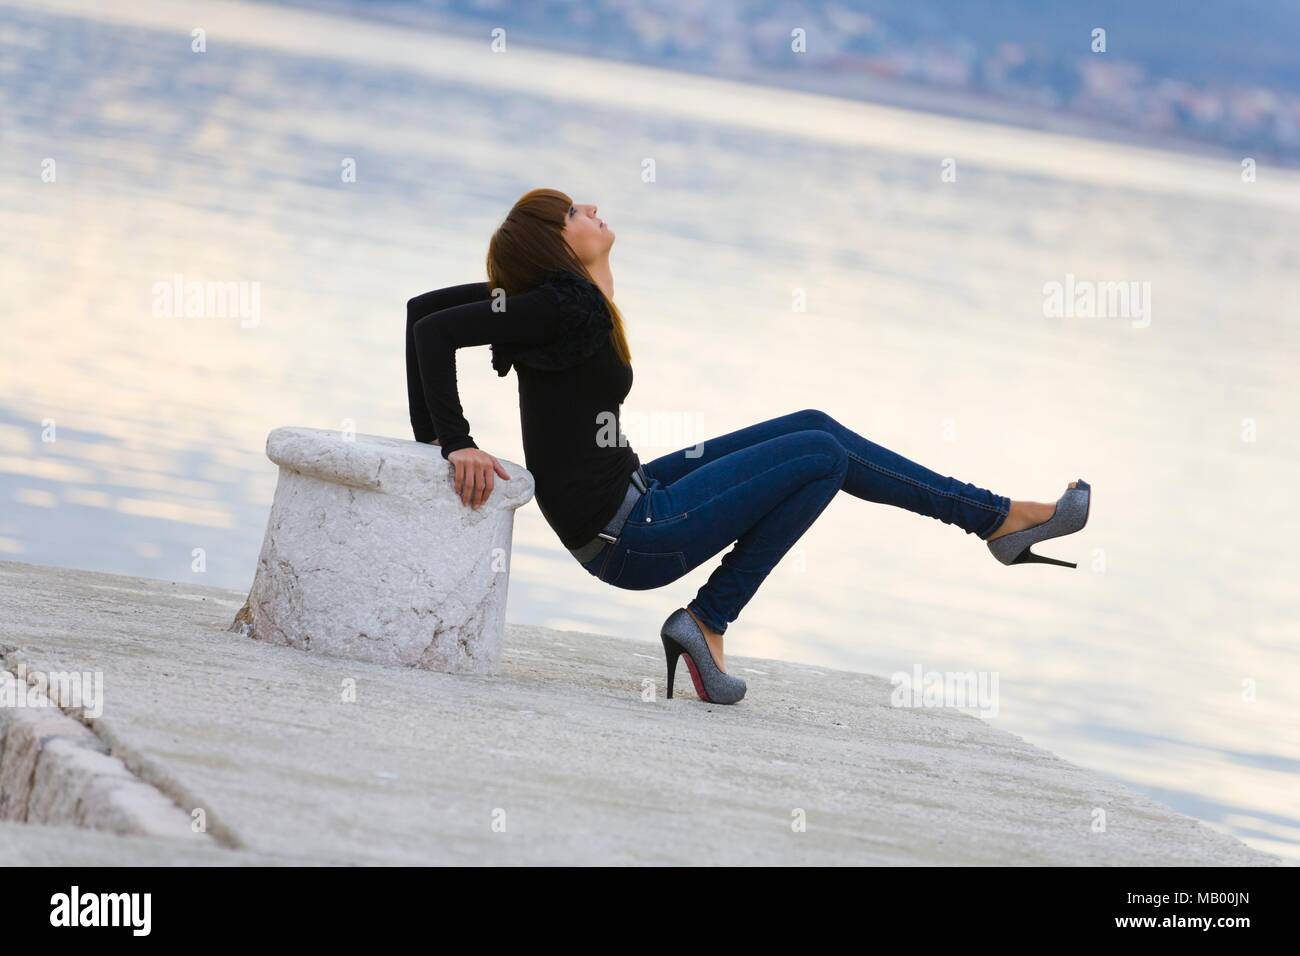 High heels and denims balancing on one leg sideways view wobbly balance spike spiked Stock Photo